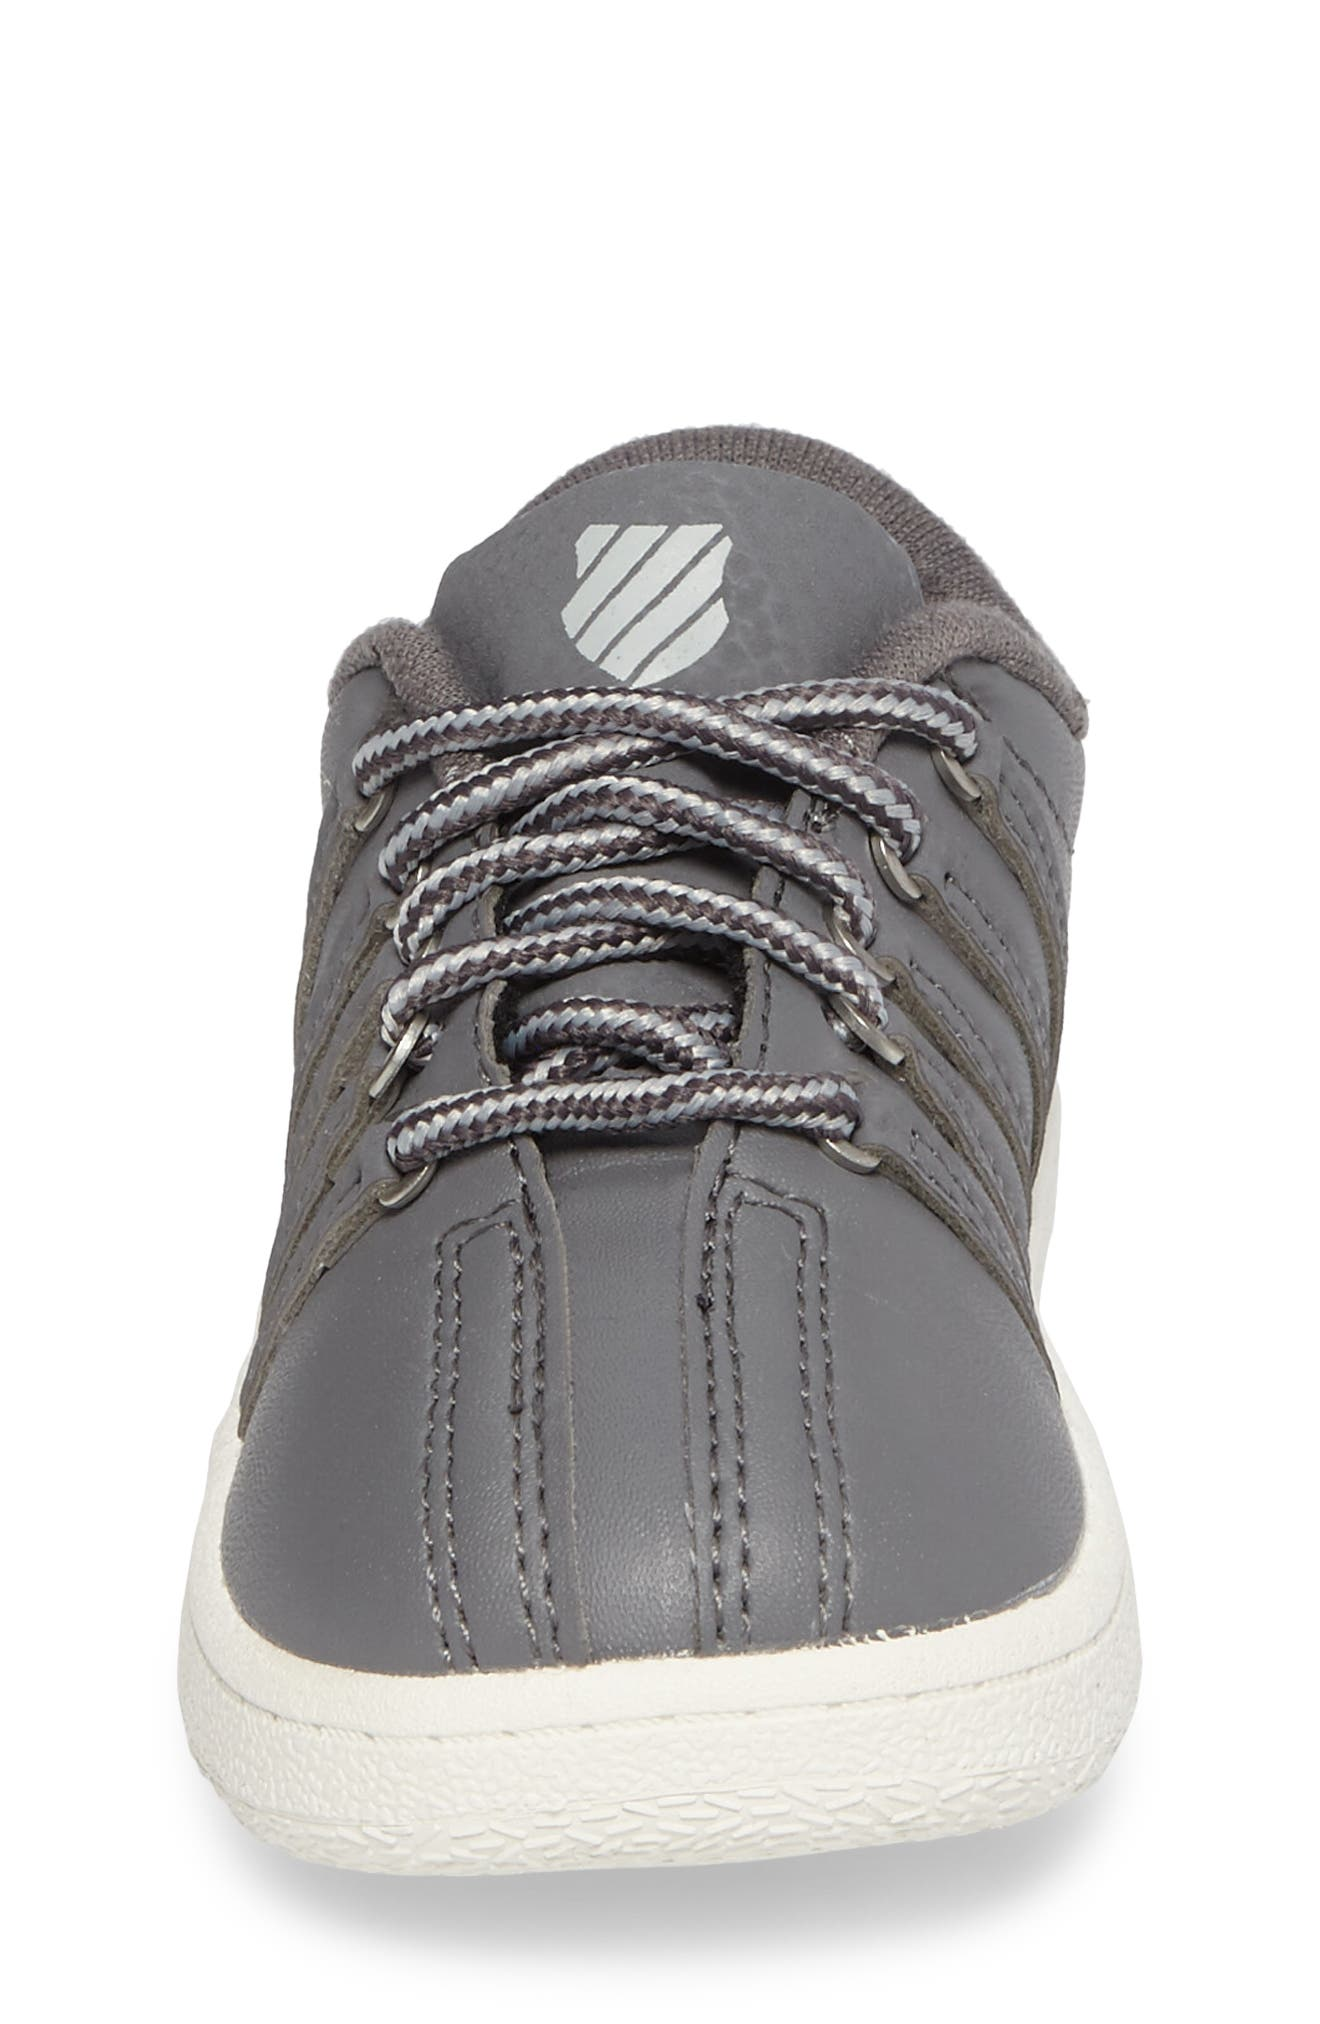 Classic VN Sneaker,                             Alternate thumbnail 4, color,                             Charcoal/ Storm/ Lily White